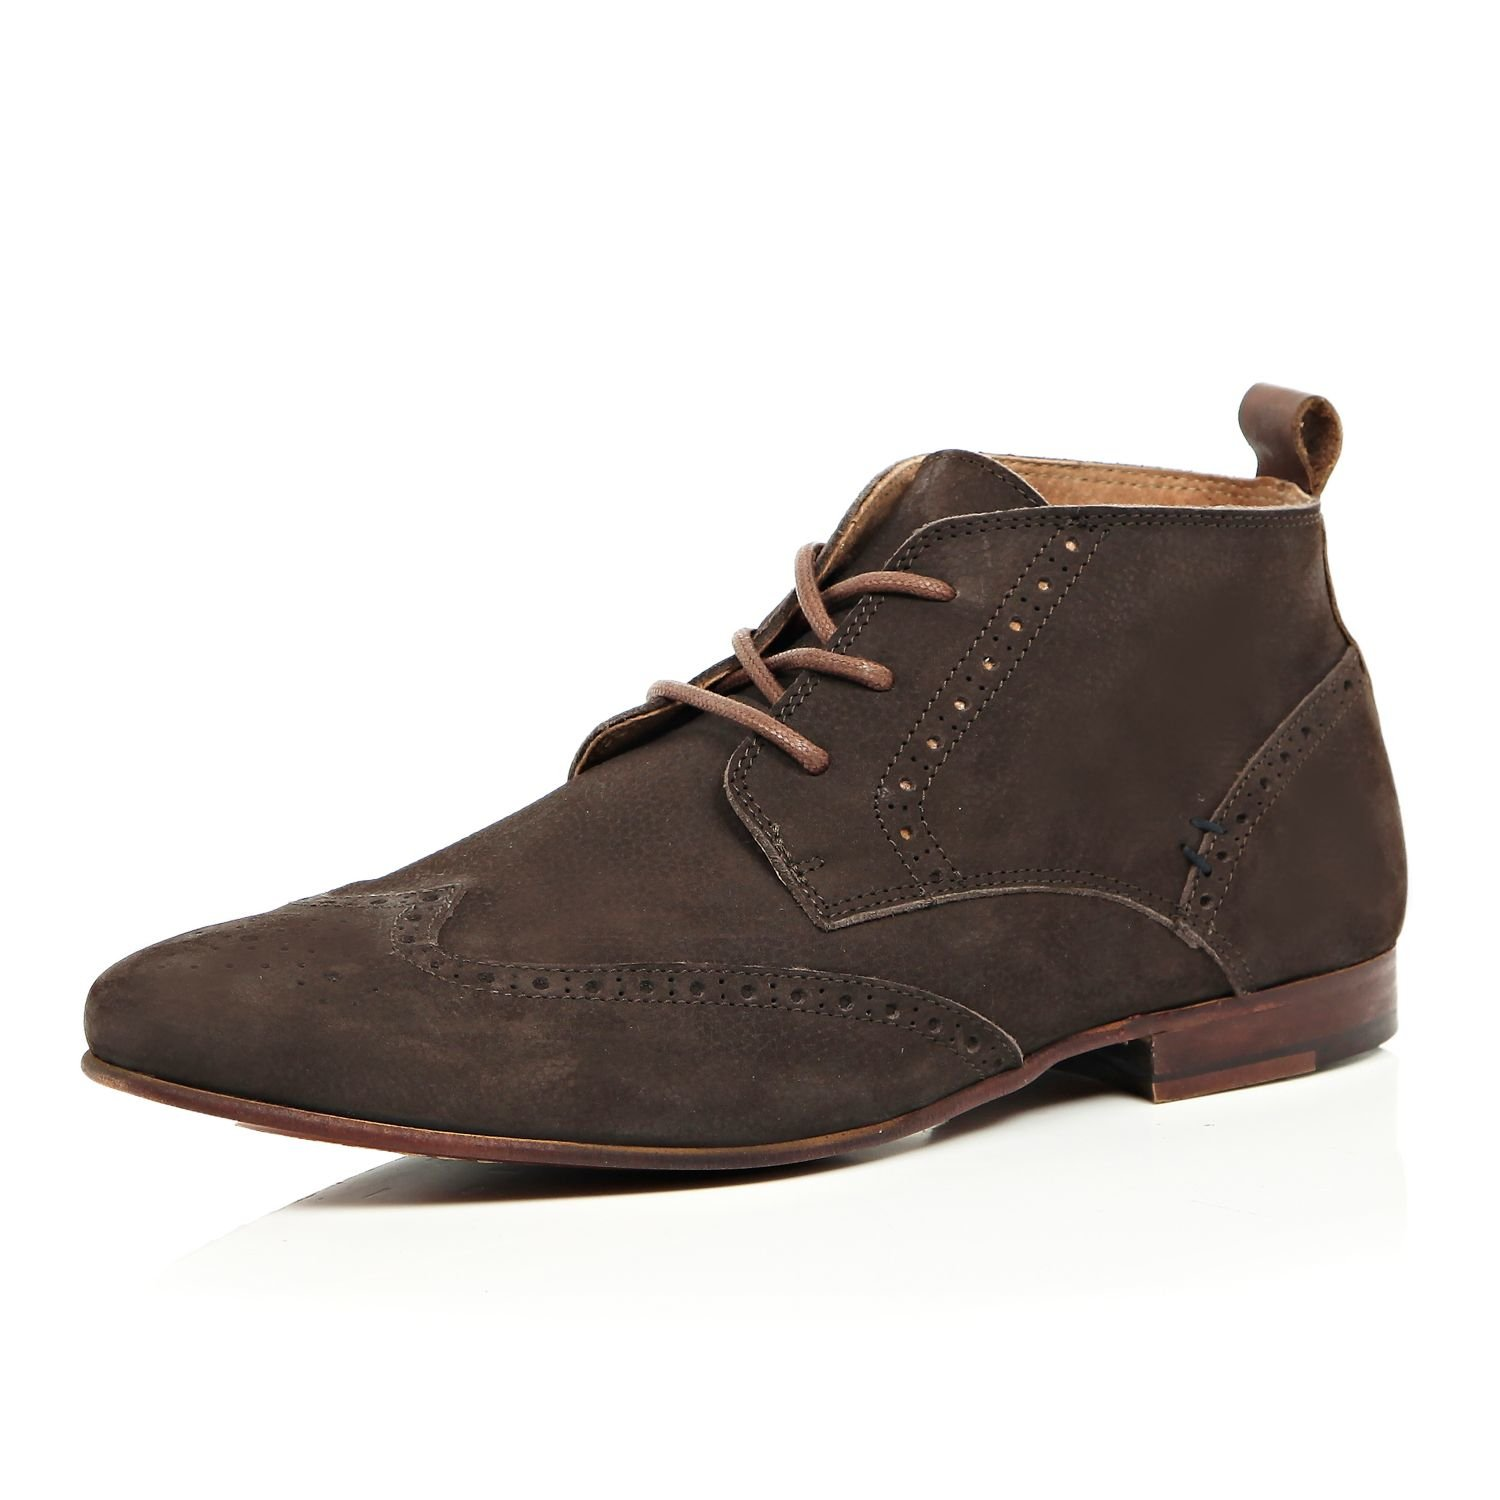 River Island Brogue Chukka Boots In Leather